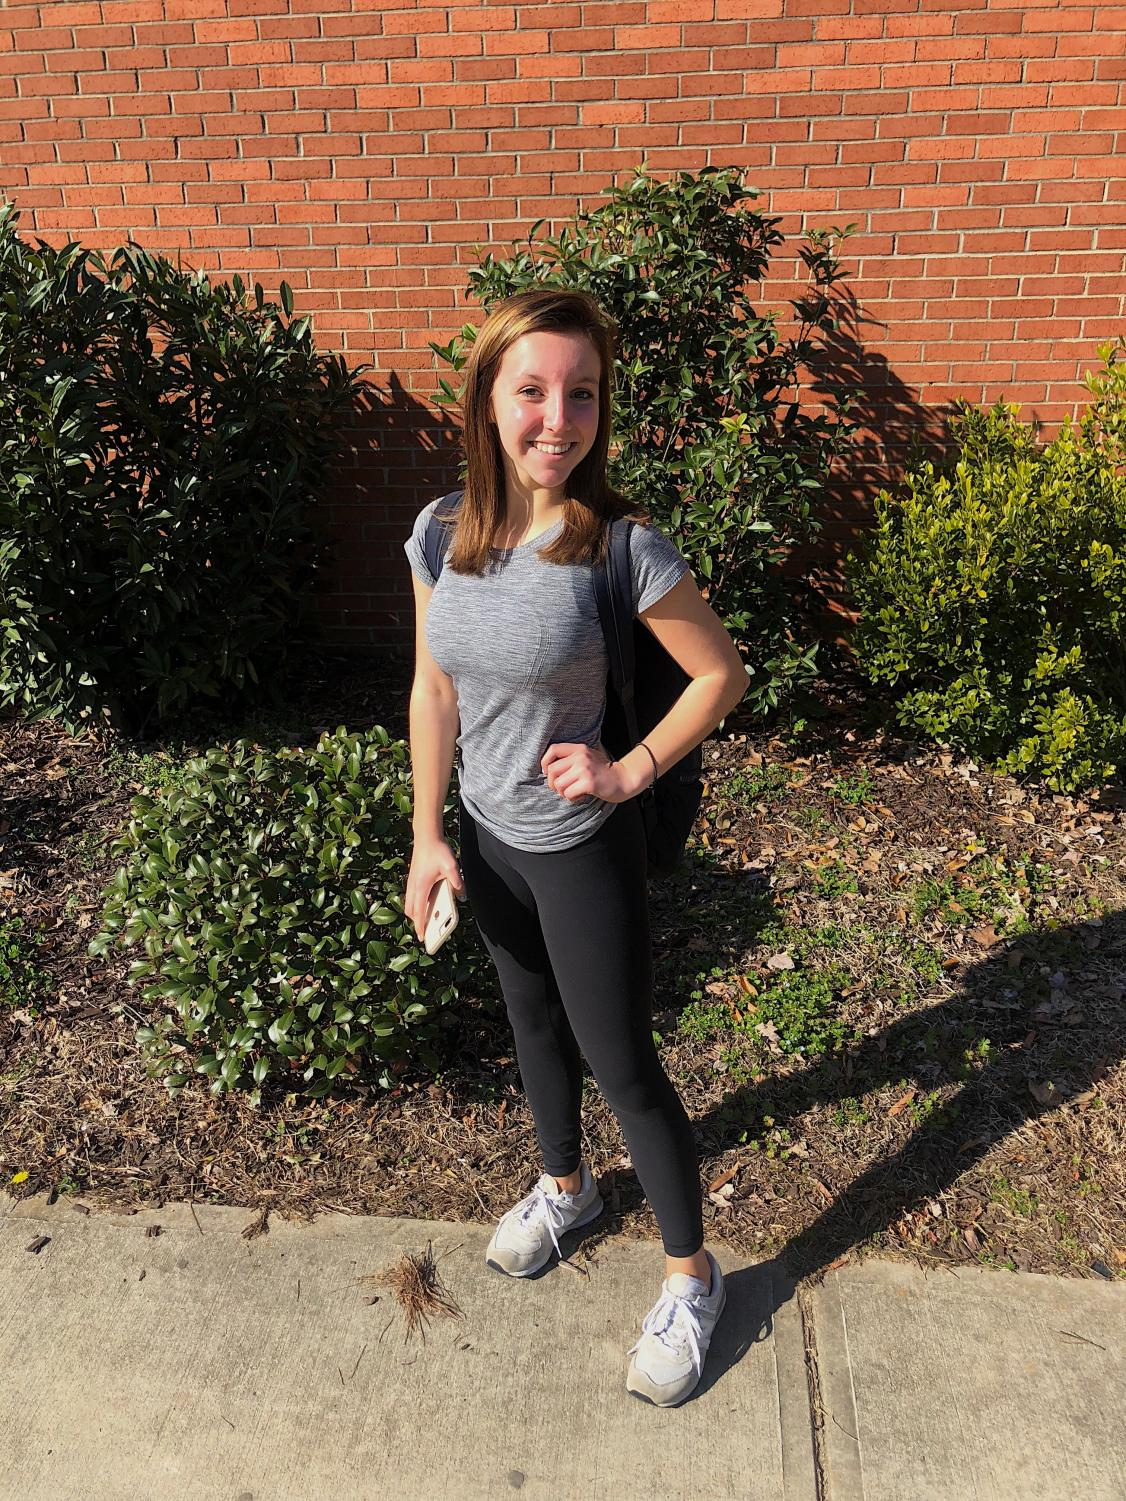 Head to toe in workout clothes, it looks like sophomore Anna Cate Broome is team Lulu! Is the sleek, sporty look just a fad, or is it here to stay?